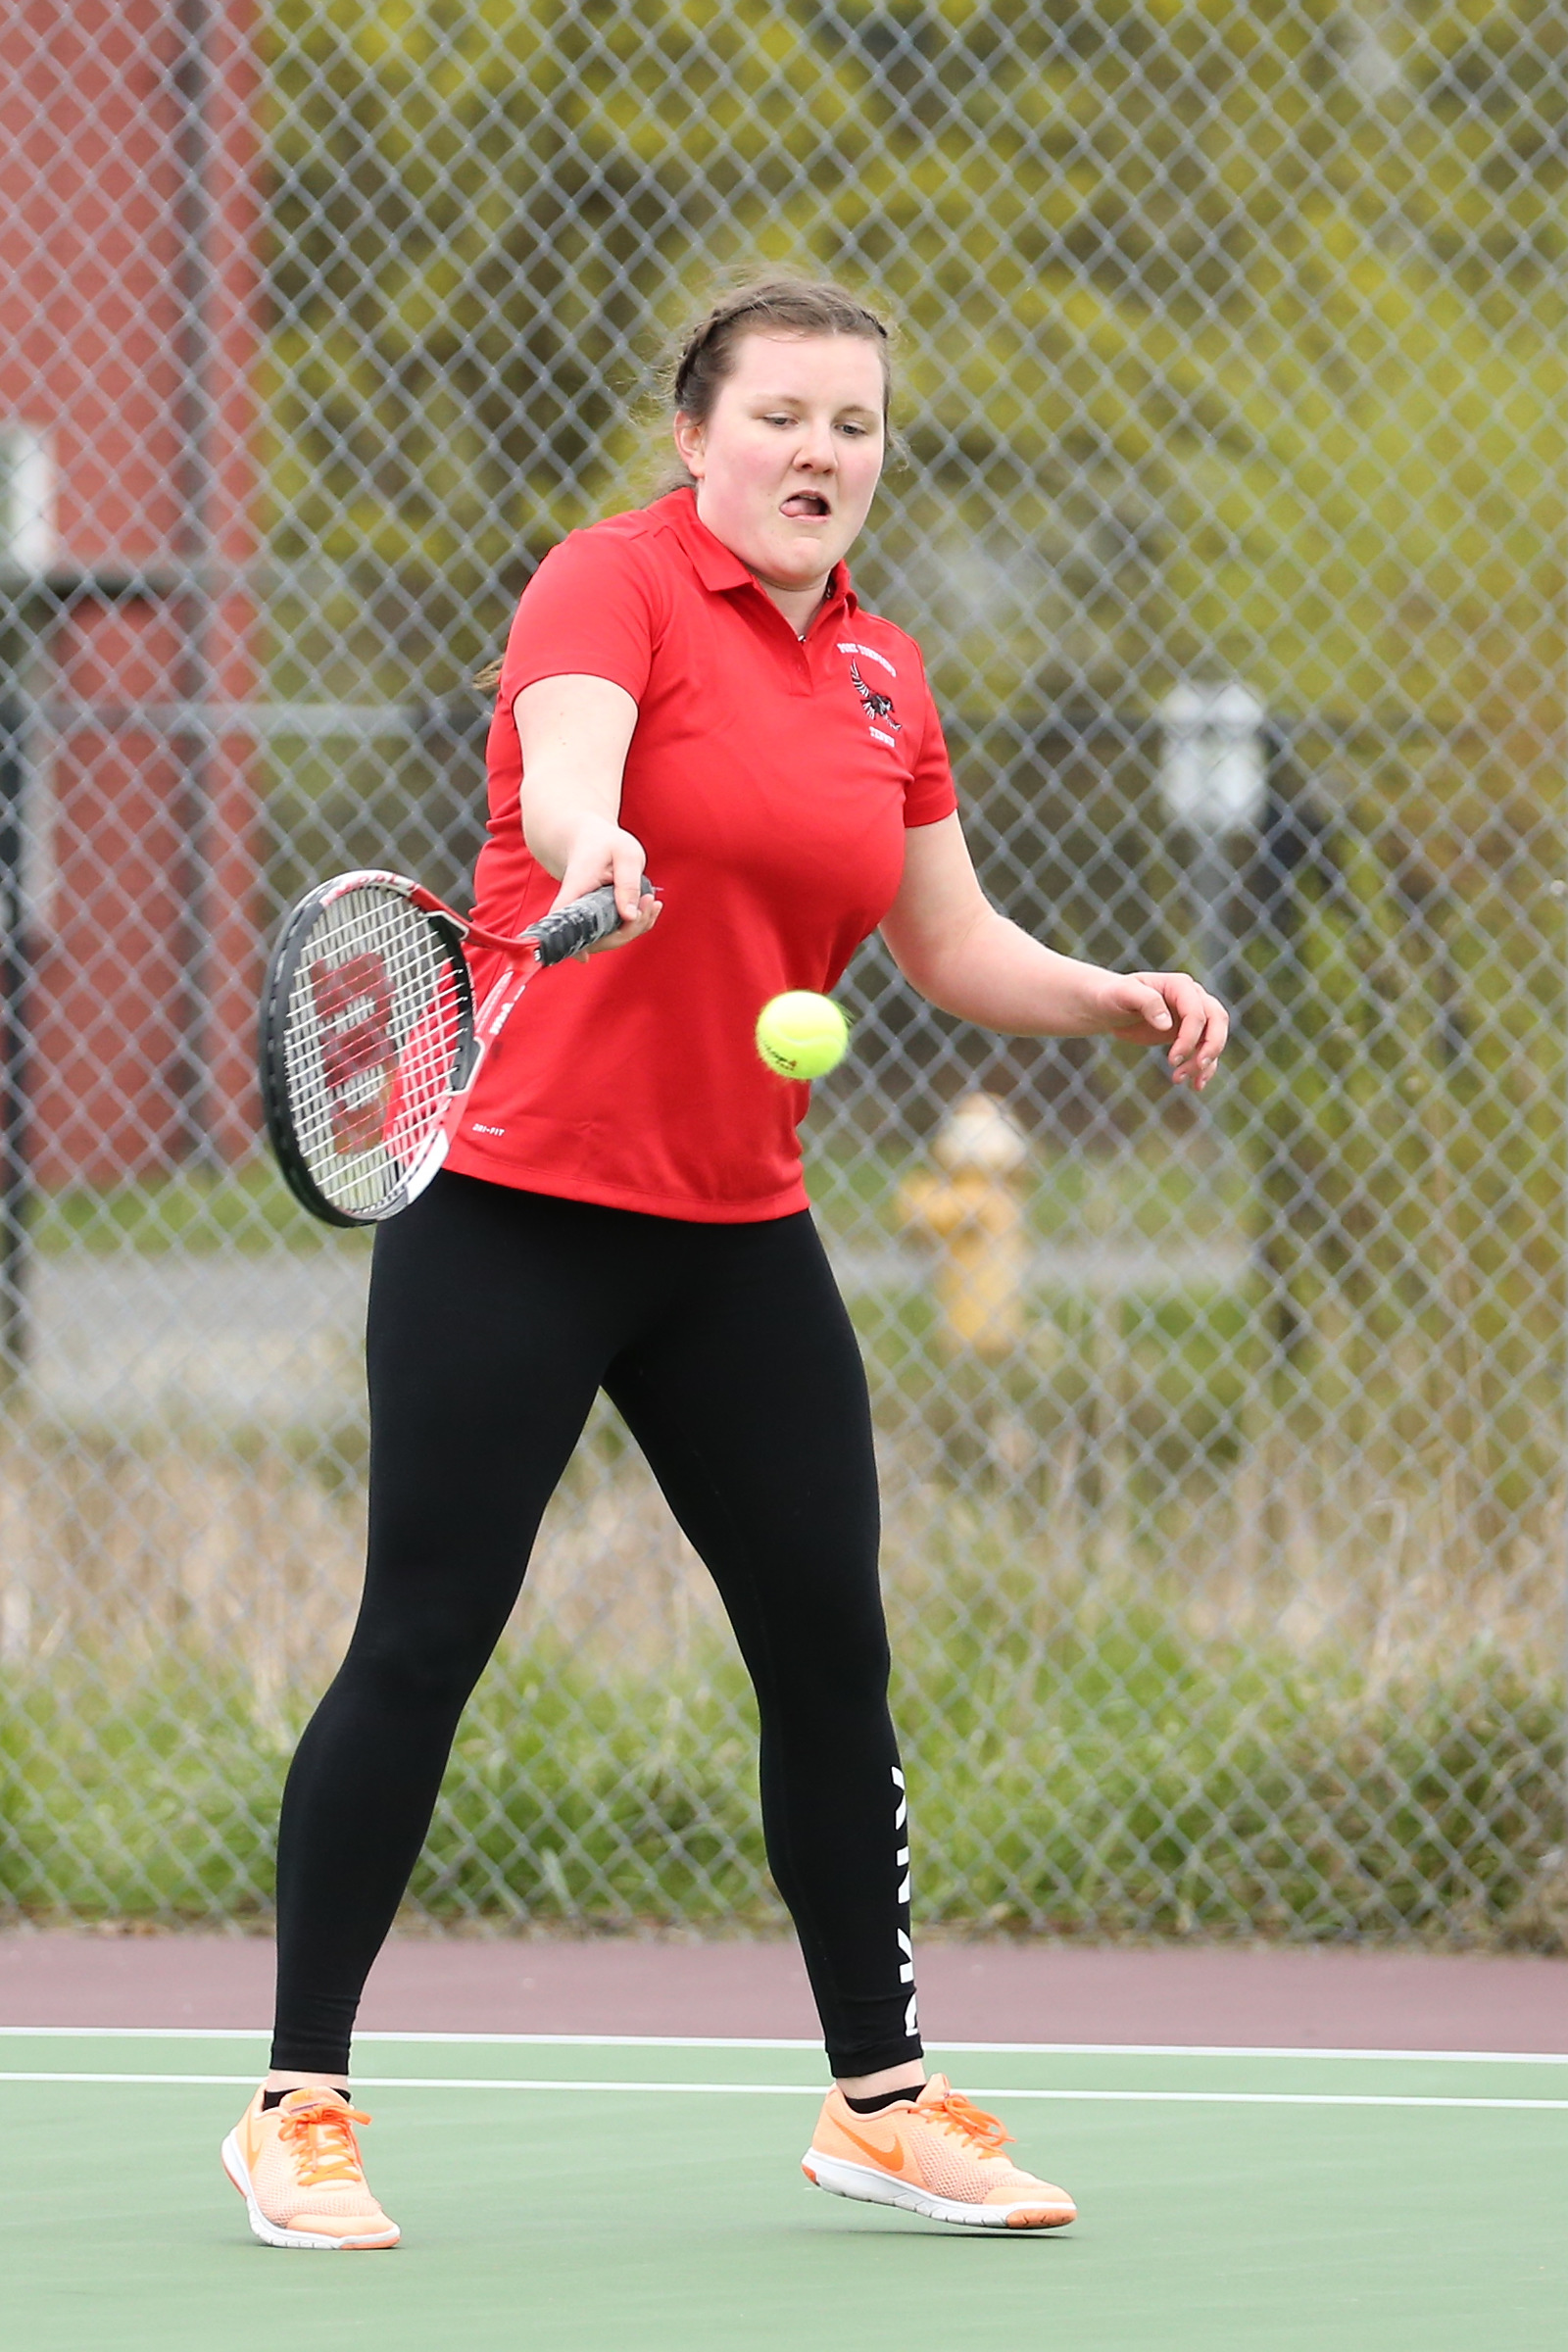 Vilma Jurma of Port Townsend, a Finnish foreign exchange student, placed  second in singles at the league tourney.